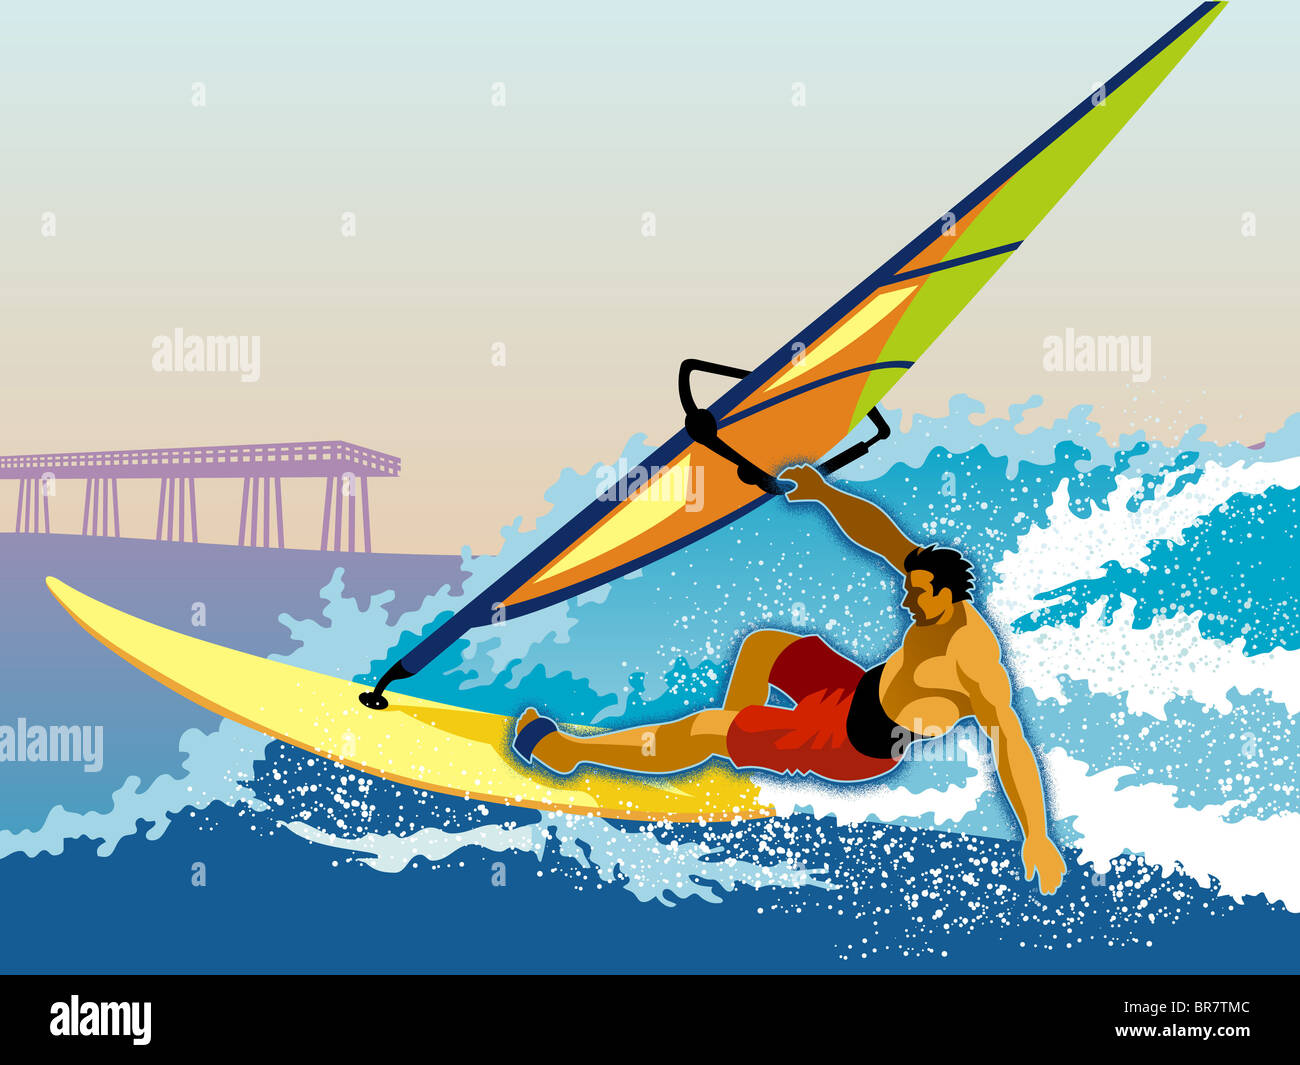 A surfer executing a one handed body drag - Stock Image